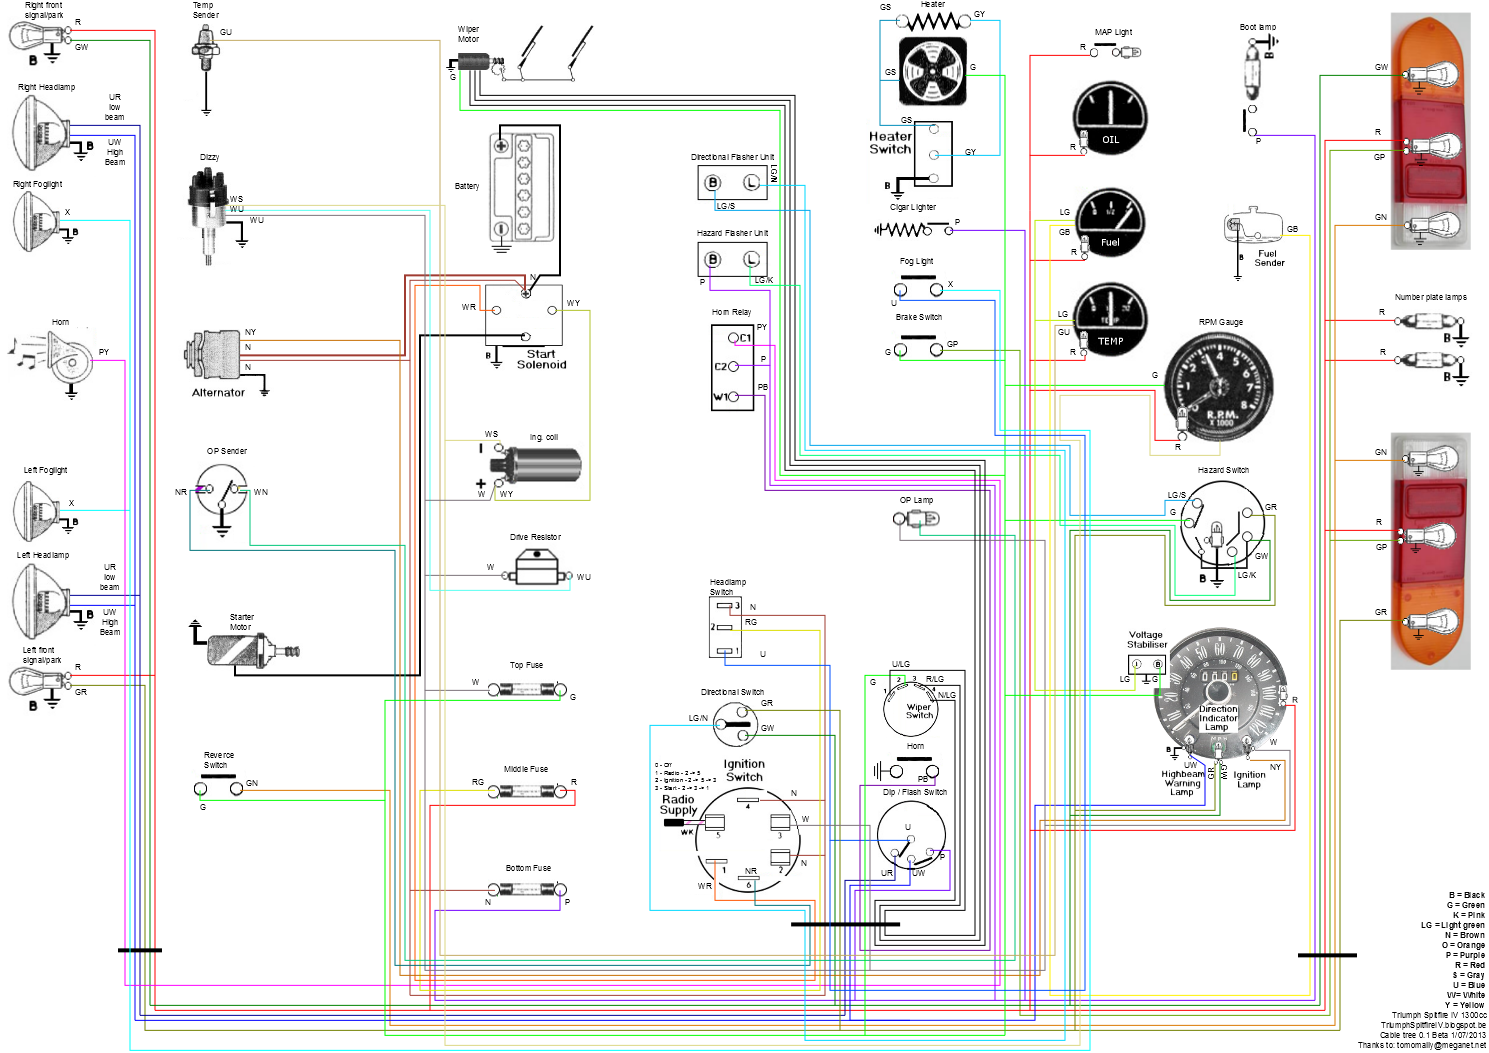 spitfire iv wiring diagram mk4 wiring diagram mk4 tdi wiring diagram \u2022 wiring diagrams j 2005 E55 AMG Performance Parts at reclaimingppi.co